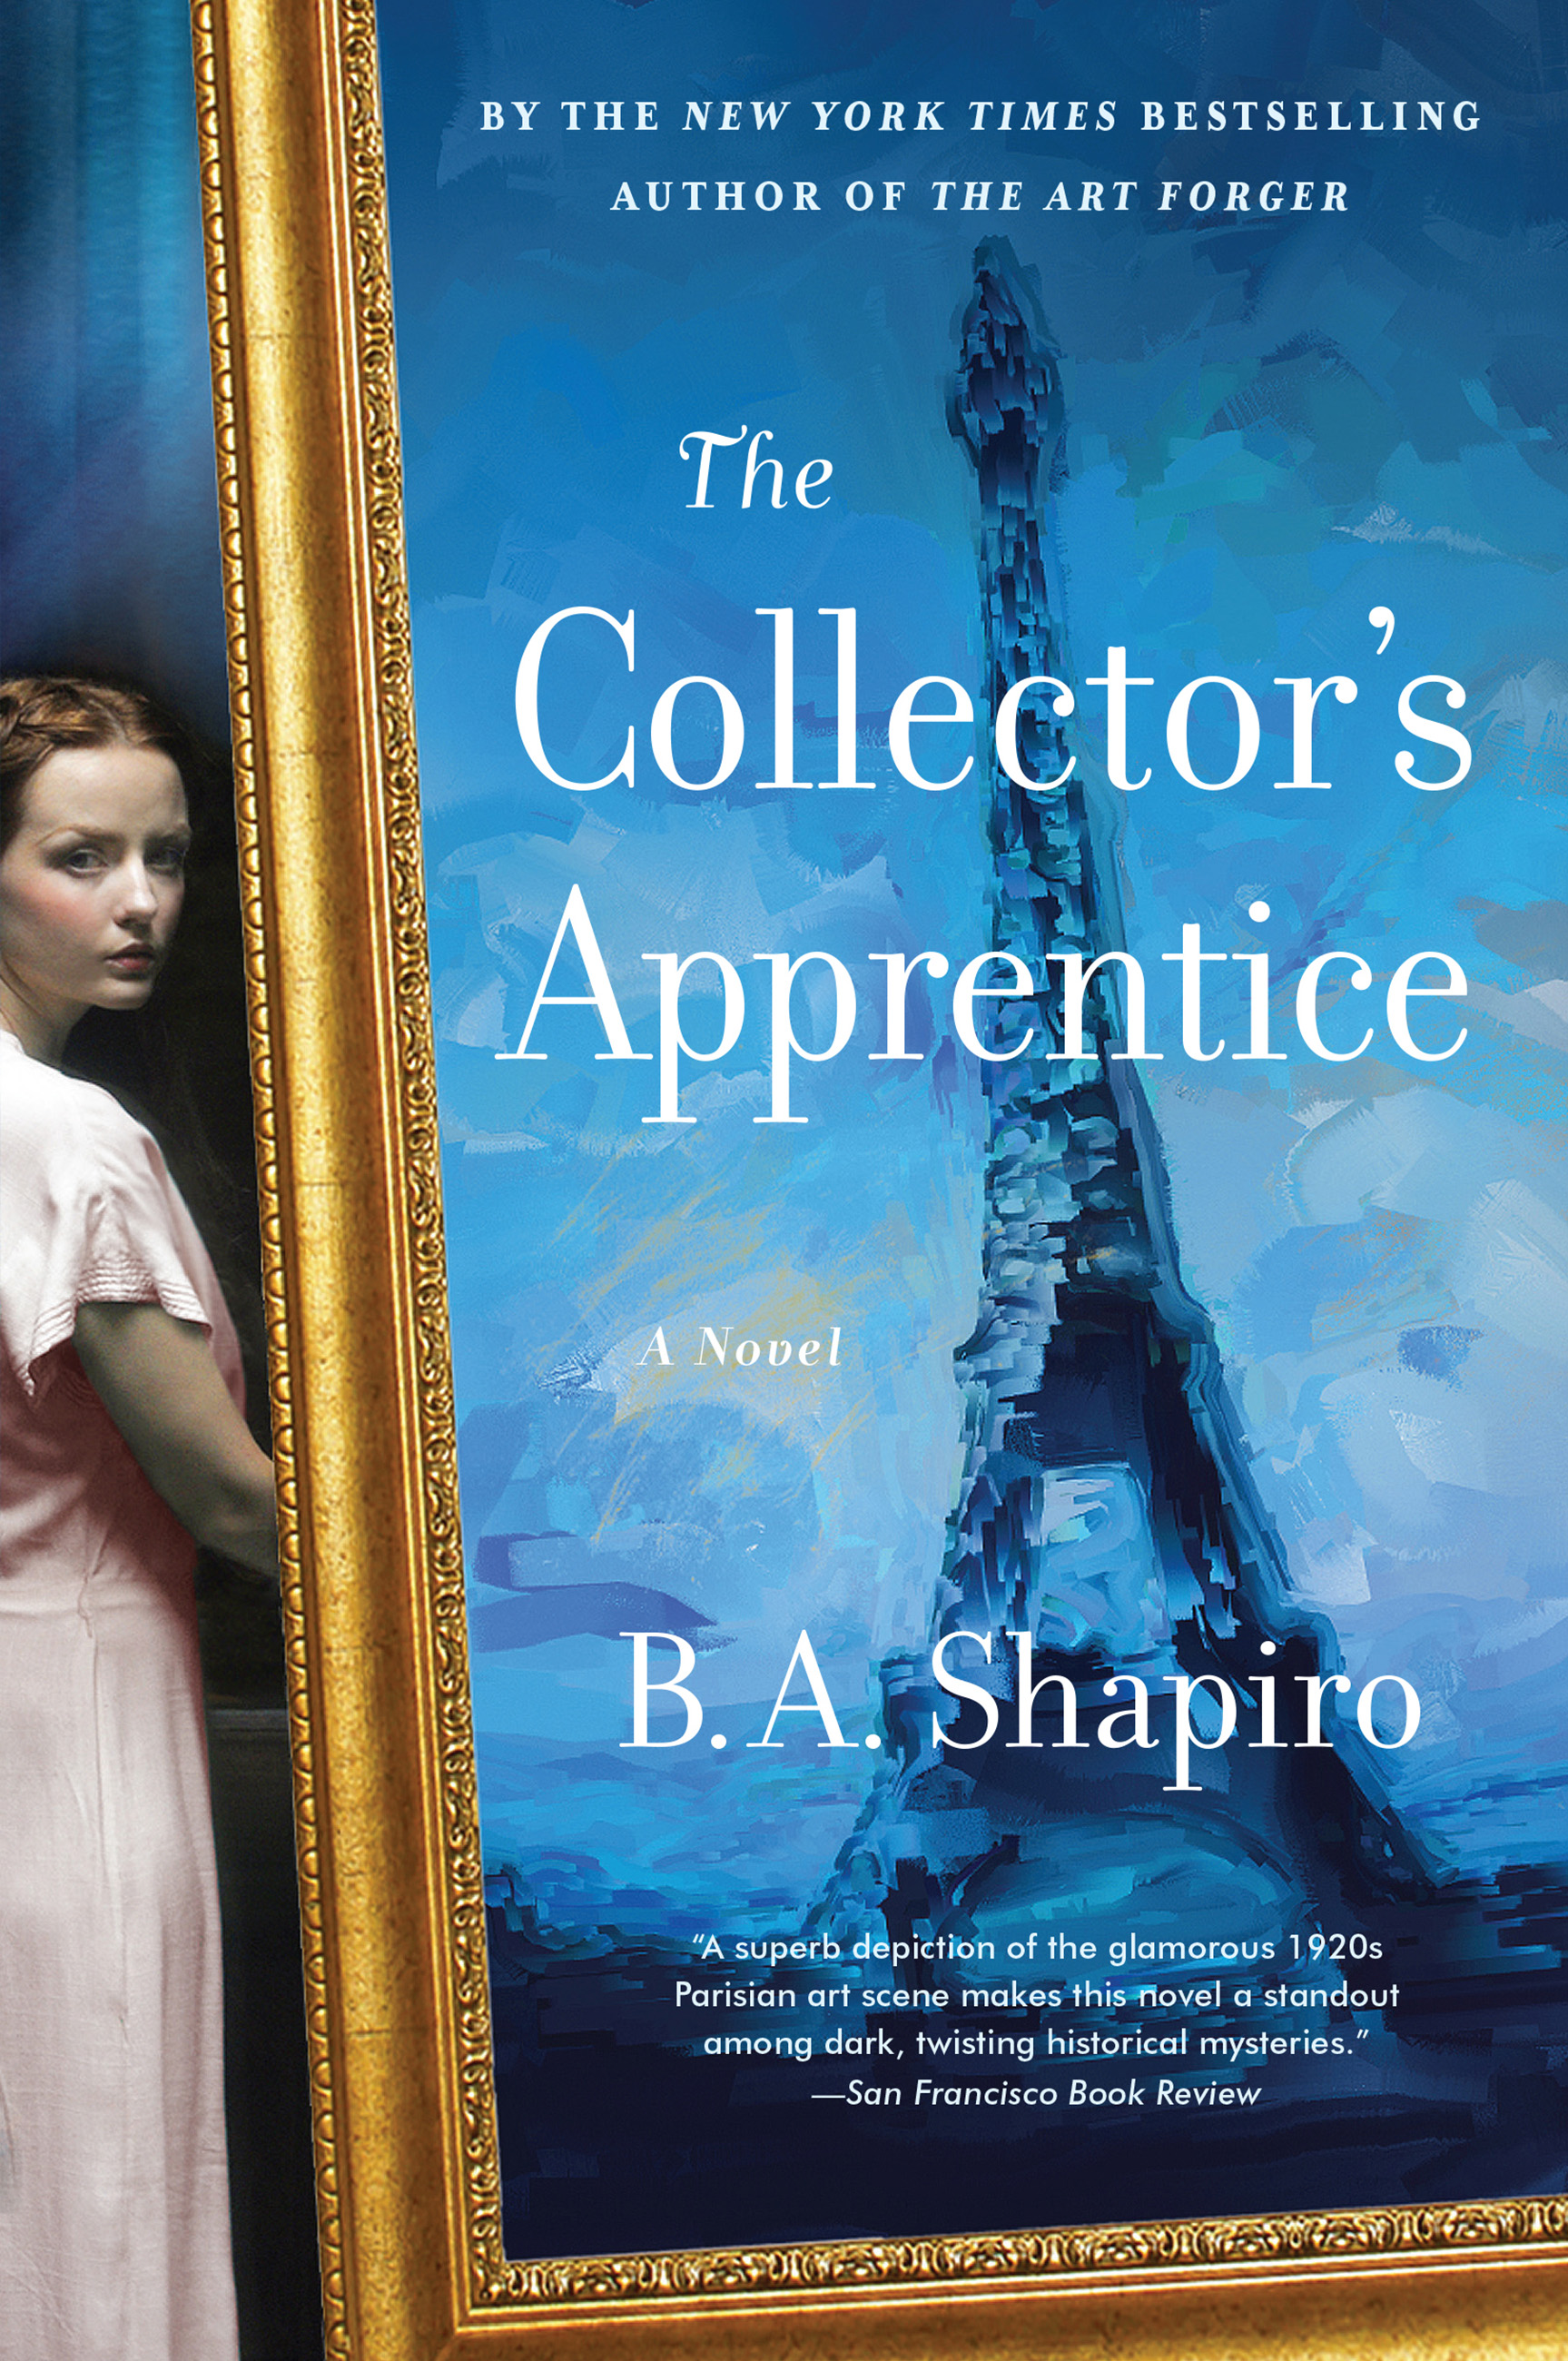 The Collector's Apprentice A Novel